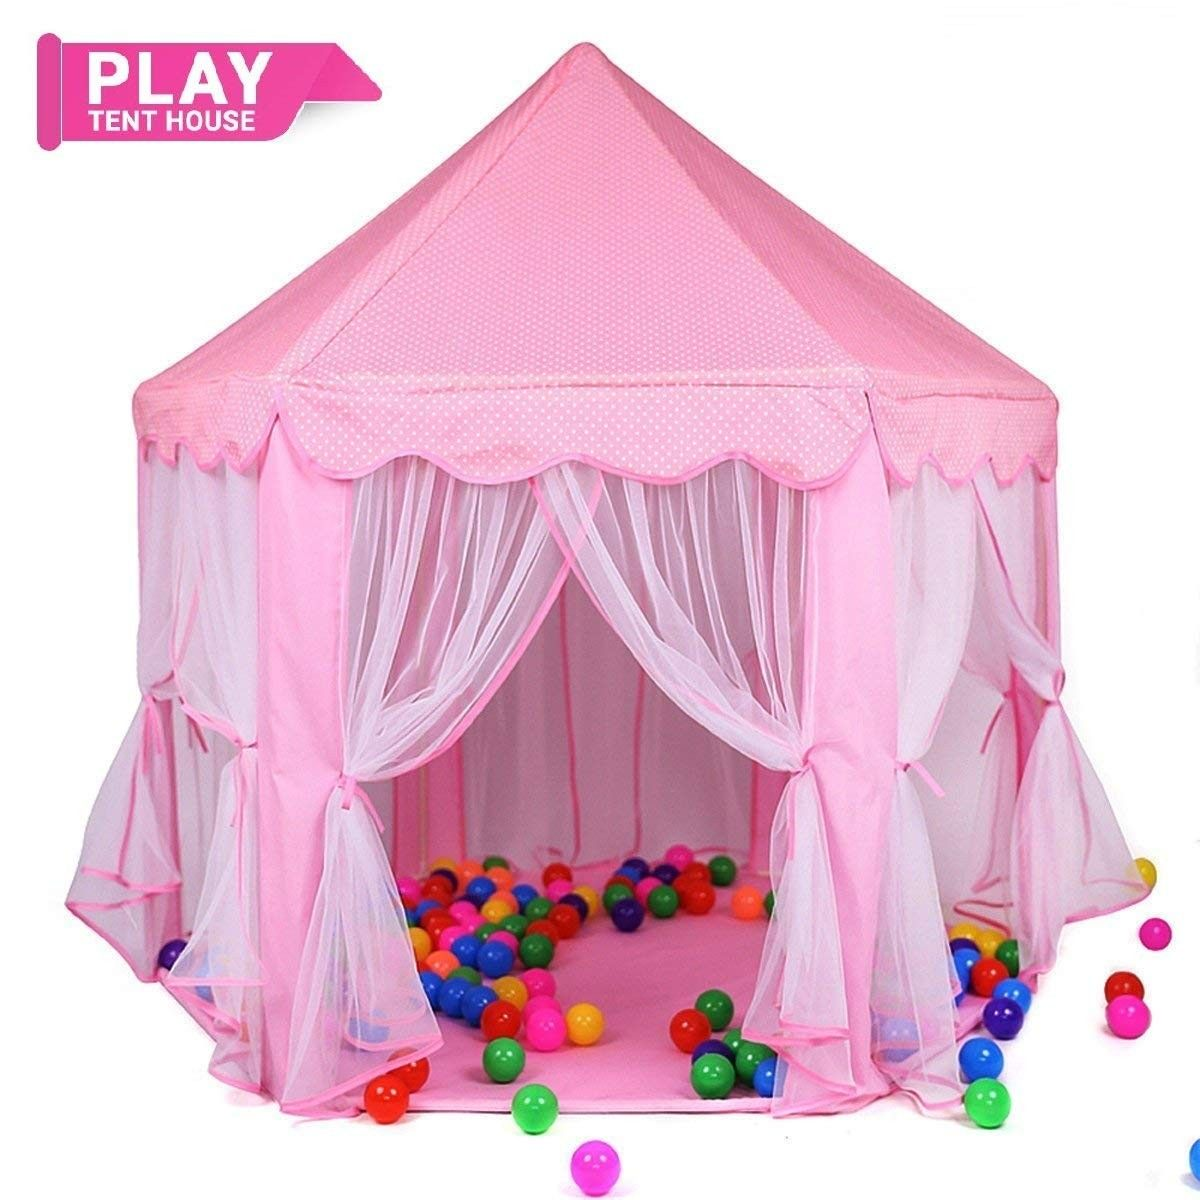 Crazeis Novelty Premium Hut Type Kids Play Tent House Play